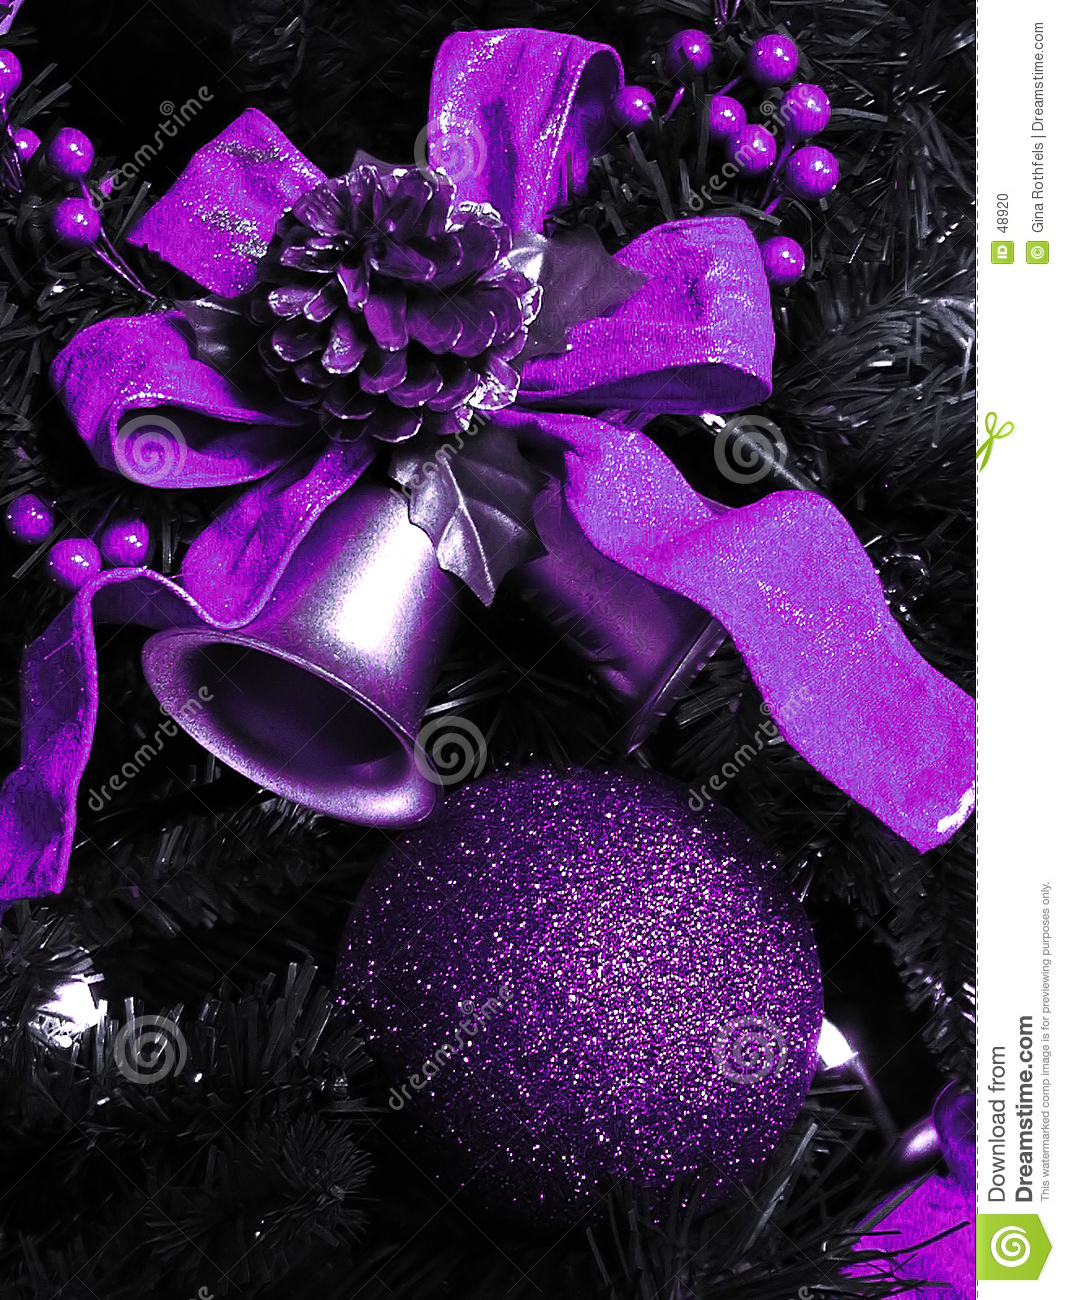 Christmas Decorations In Purple: Purple Christmas Decorations Stock Photo